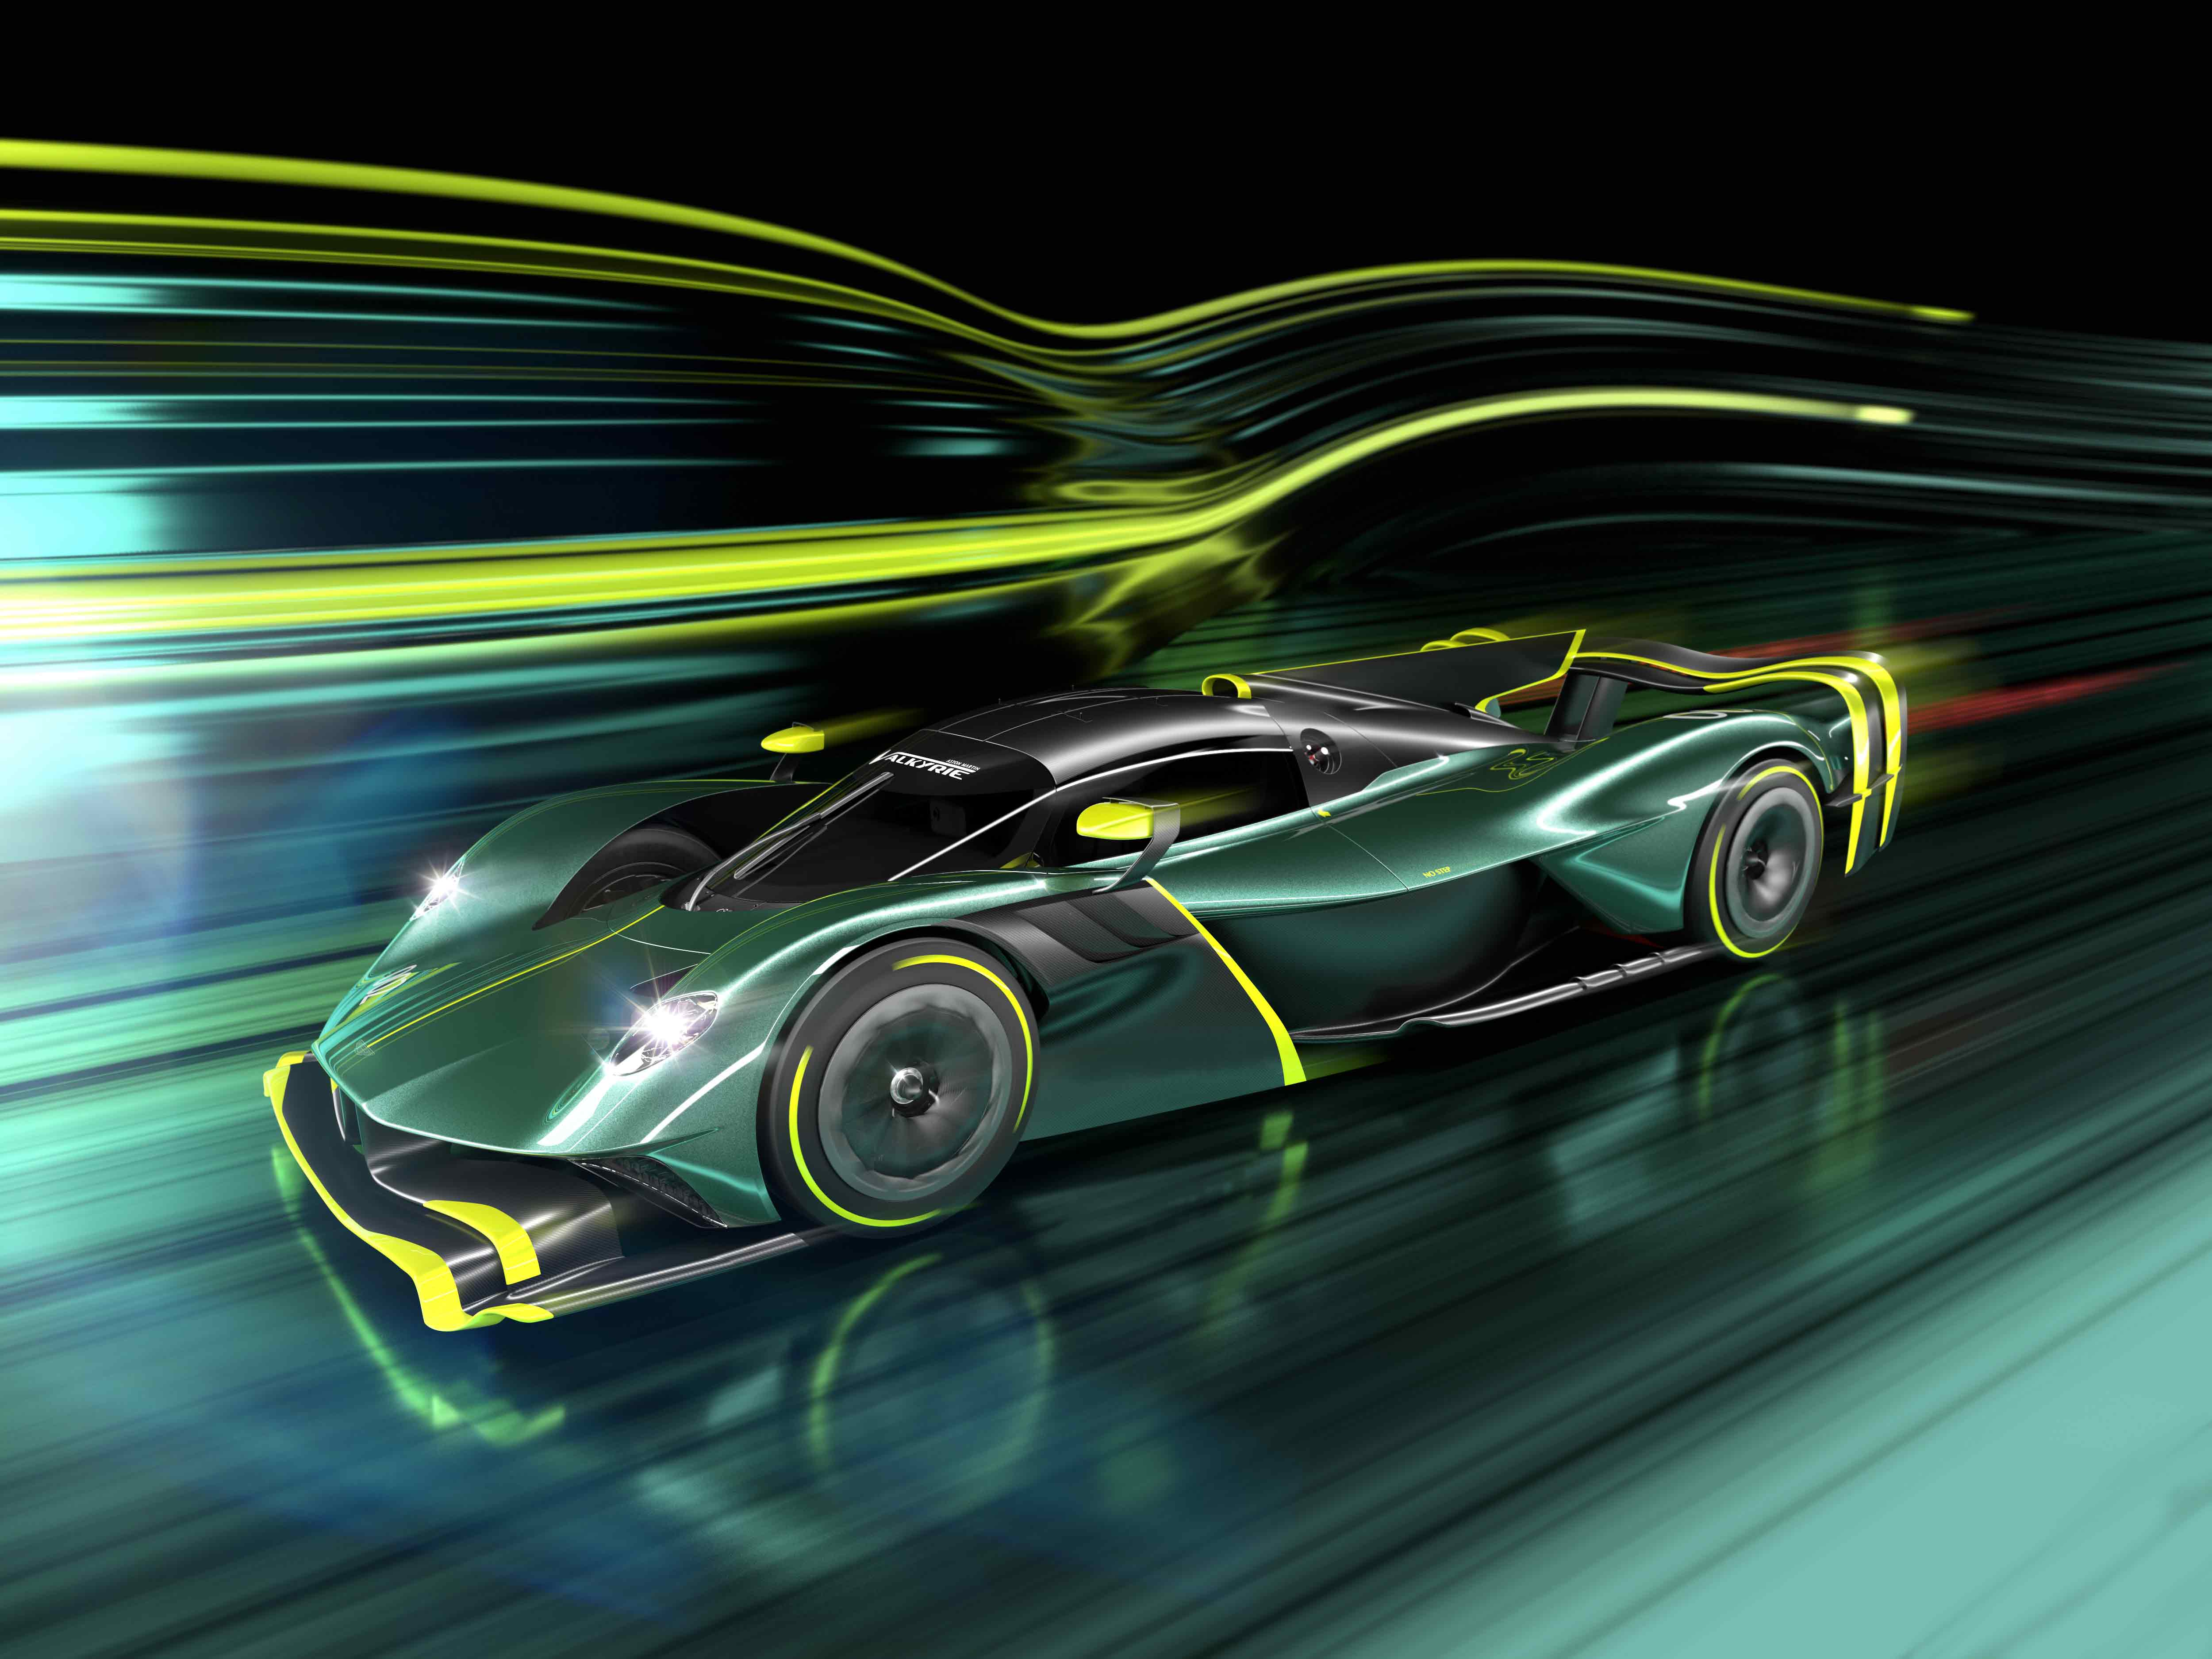 Aston Martin Valkyrie AMR Pro the ultimate no rules Hypercar